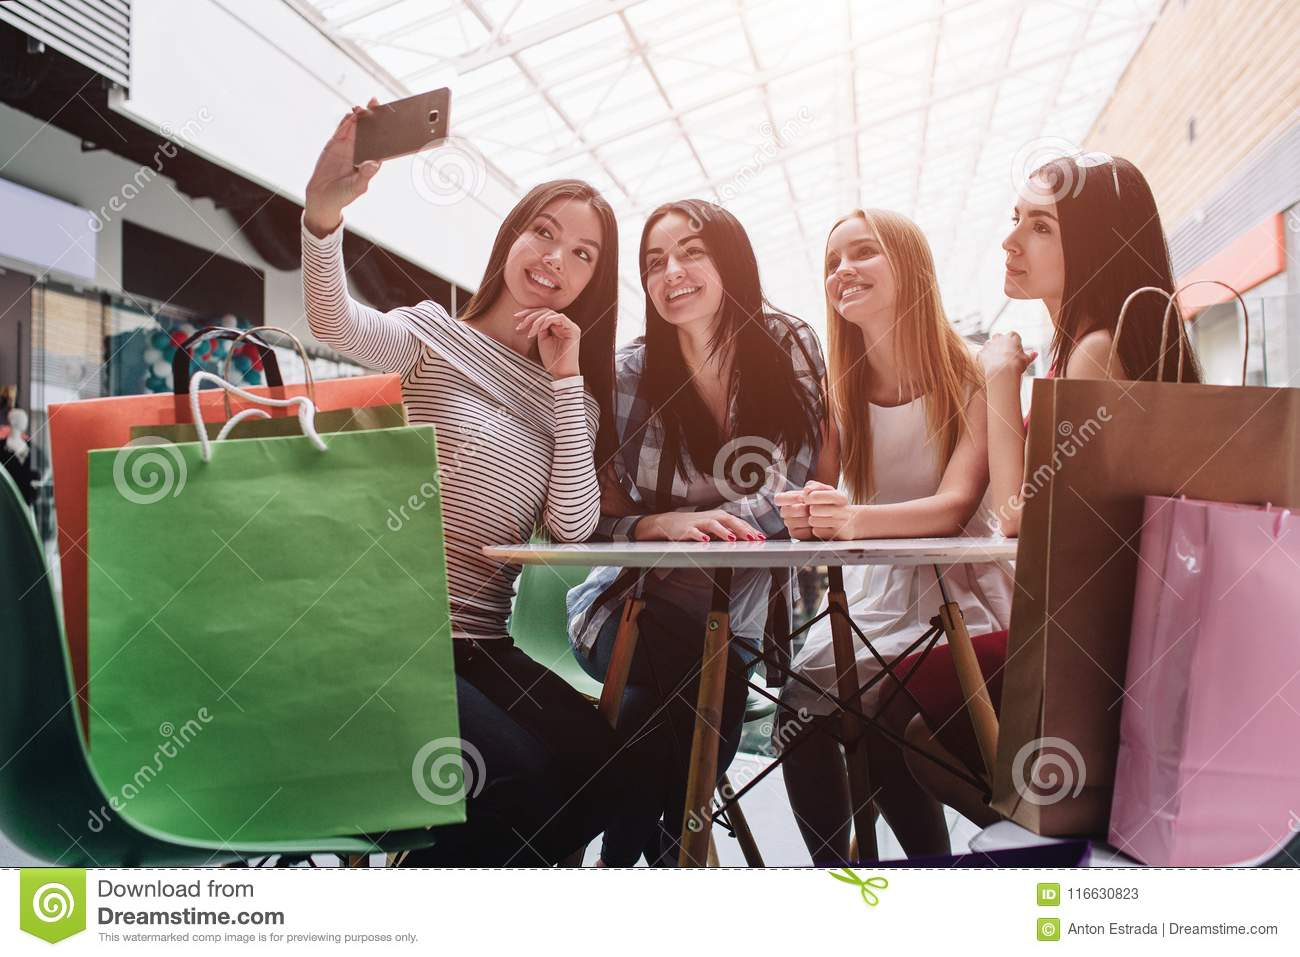 Beautiful girls are sitting at table and talking selfie. Asian girl is holding camera and taking picture of it. There